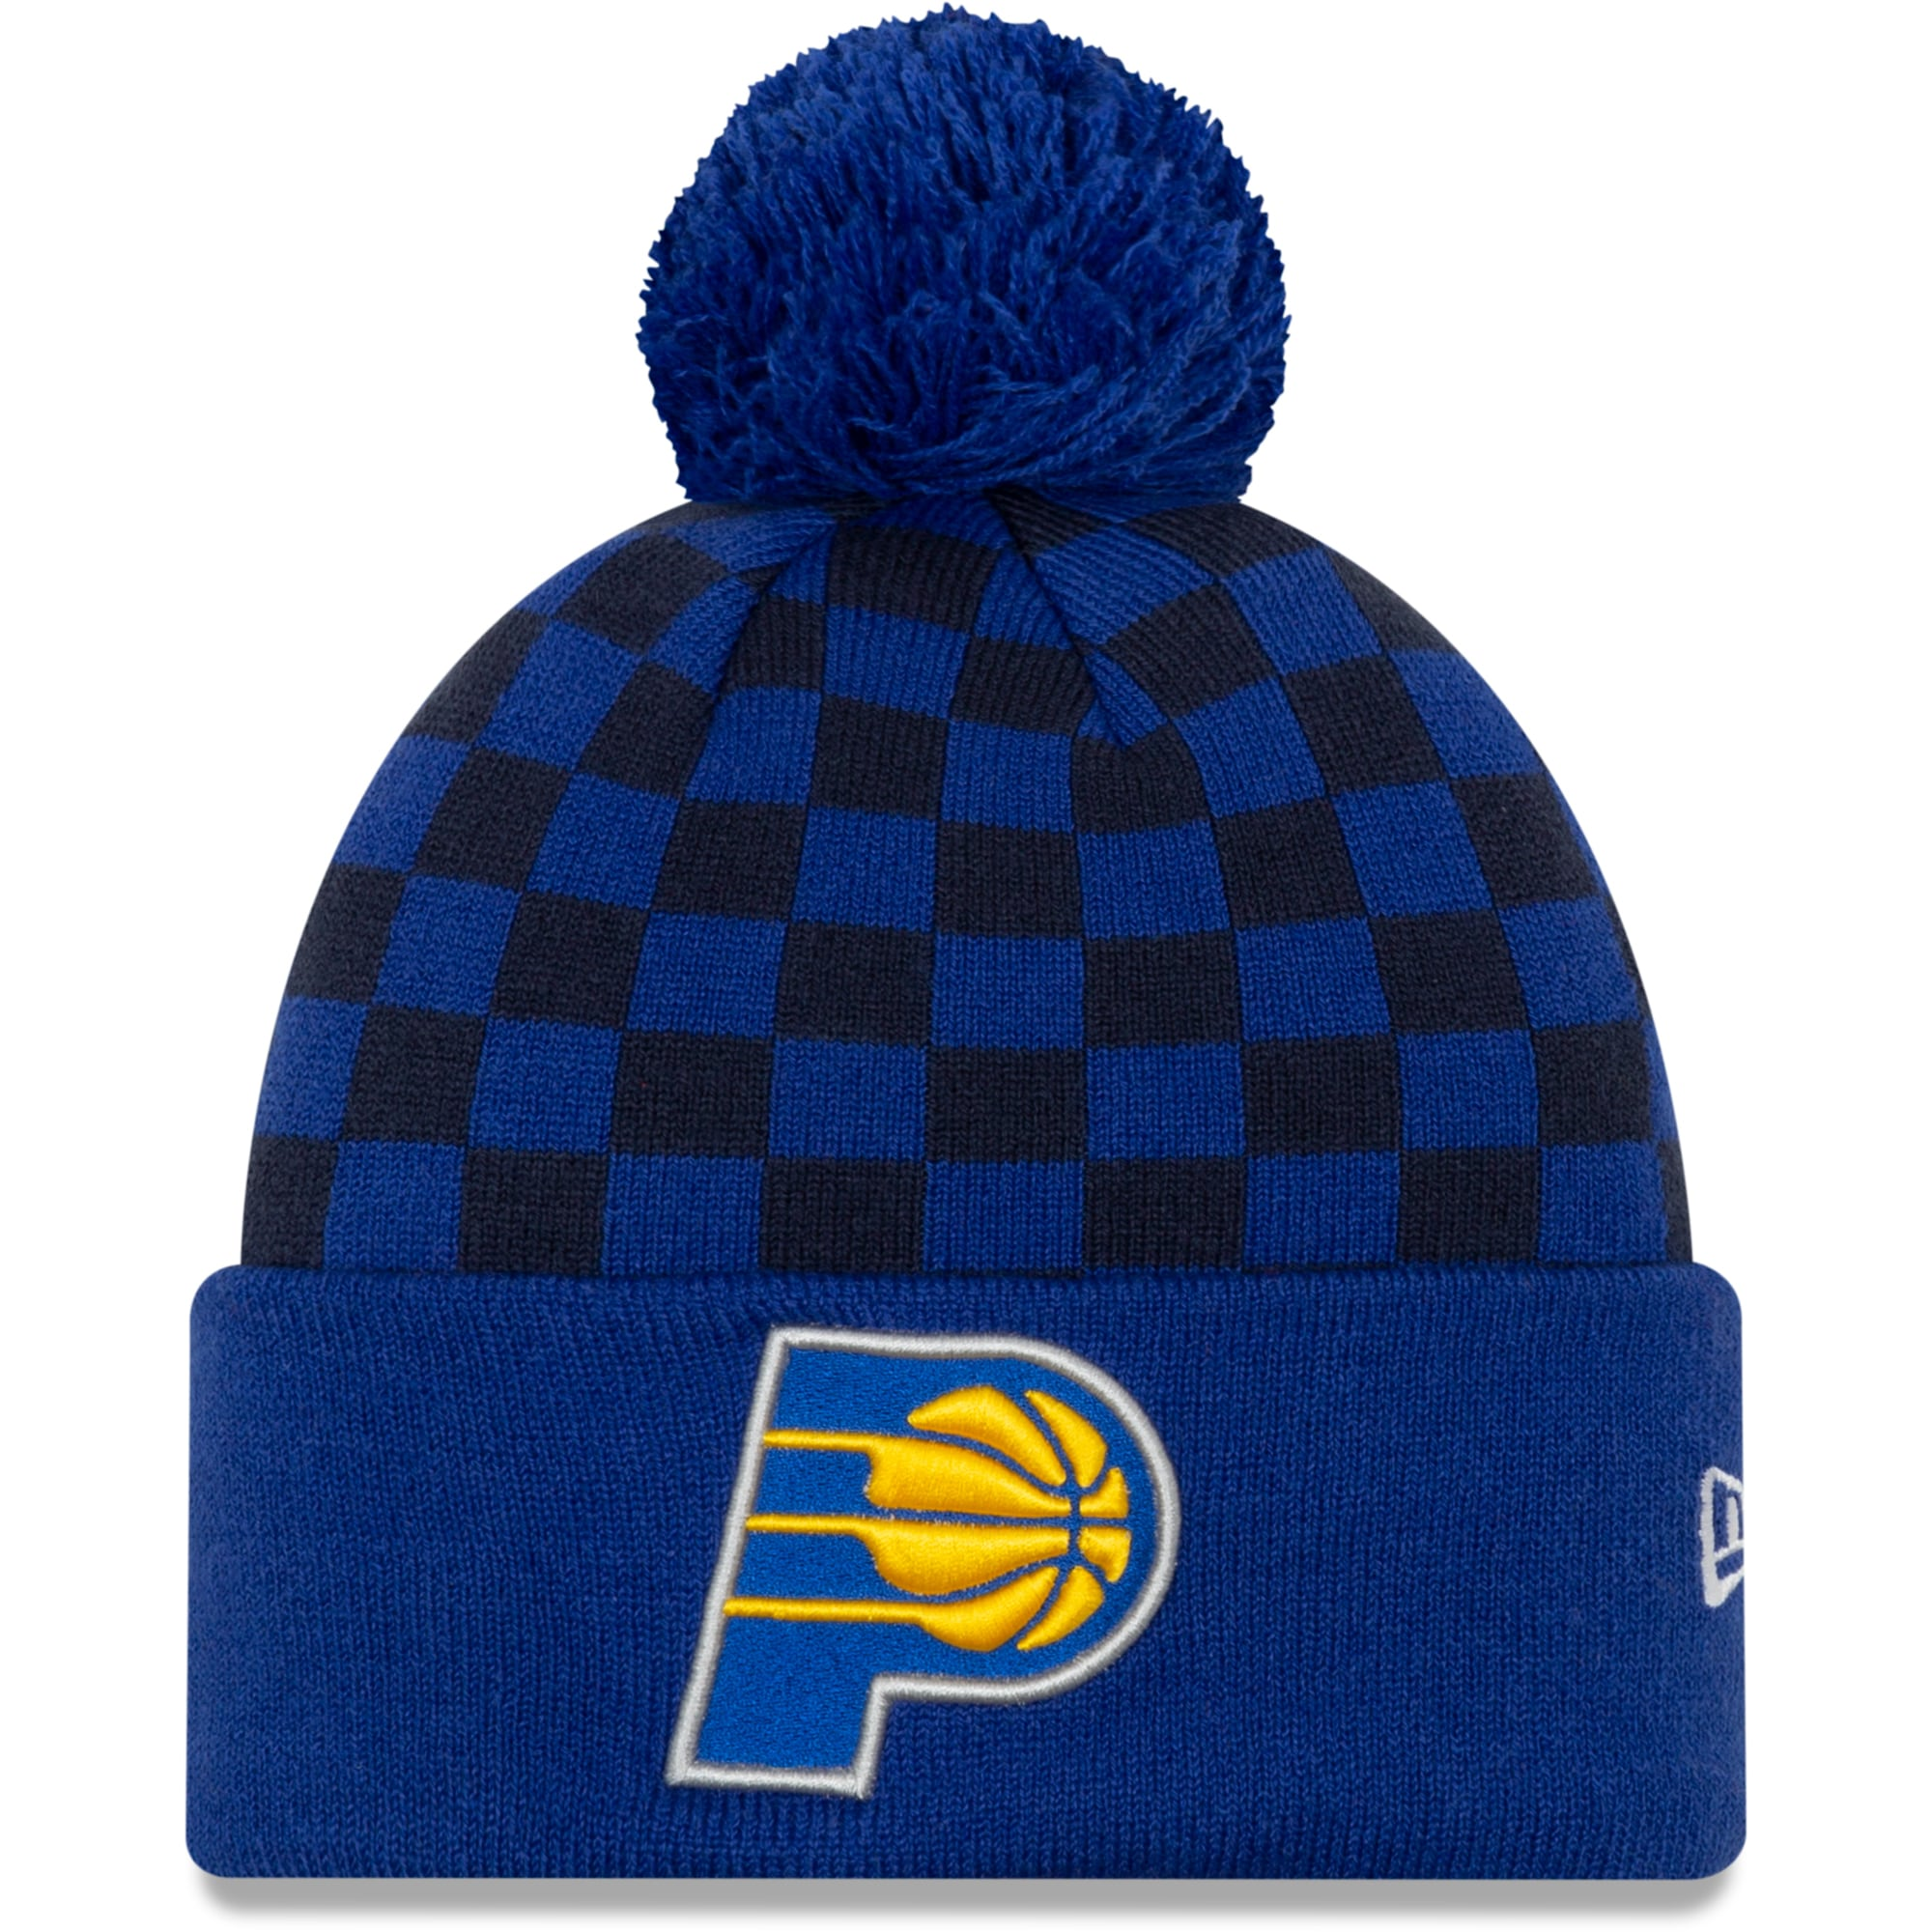 Indiana Pacers New Era 2019/20 City Edition Pom Knit Hat - Blue